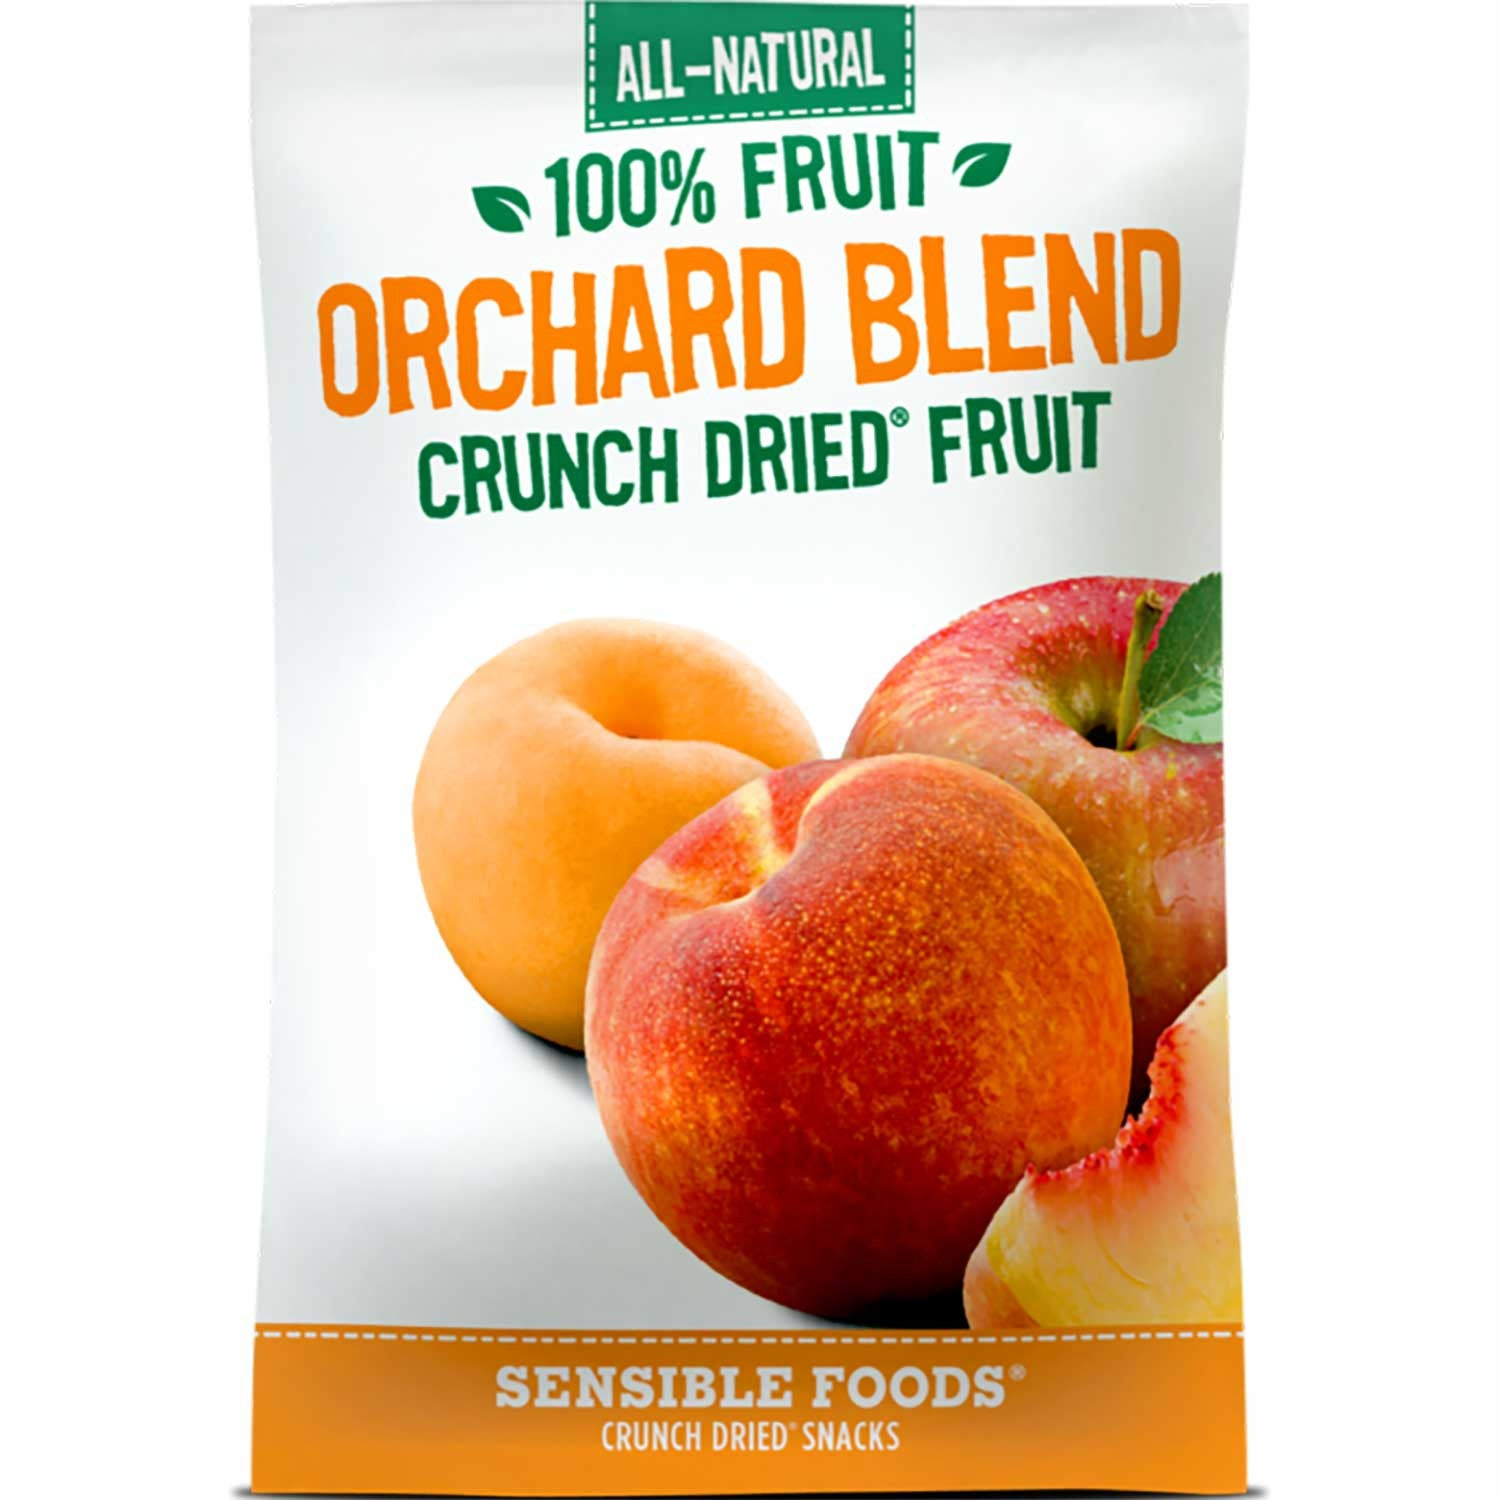 Sensible Foods Orchard Blend Crunch Dried Fruit, 21g.-NaturesWisdom